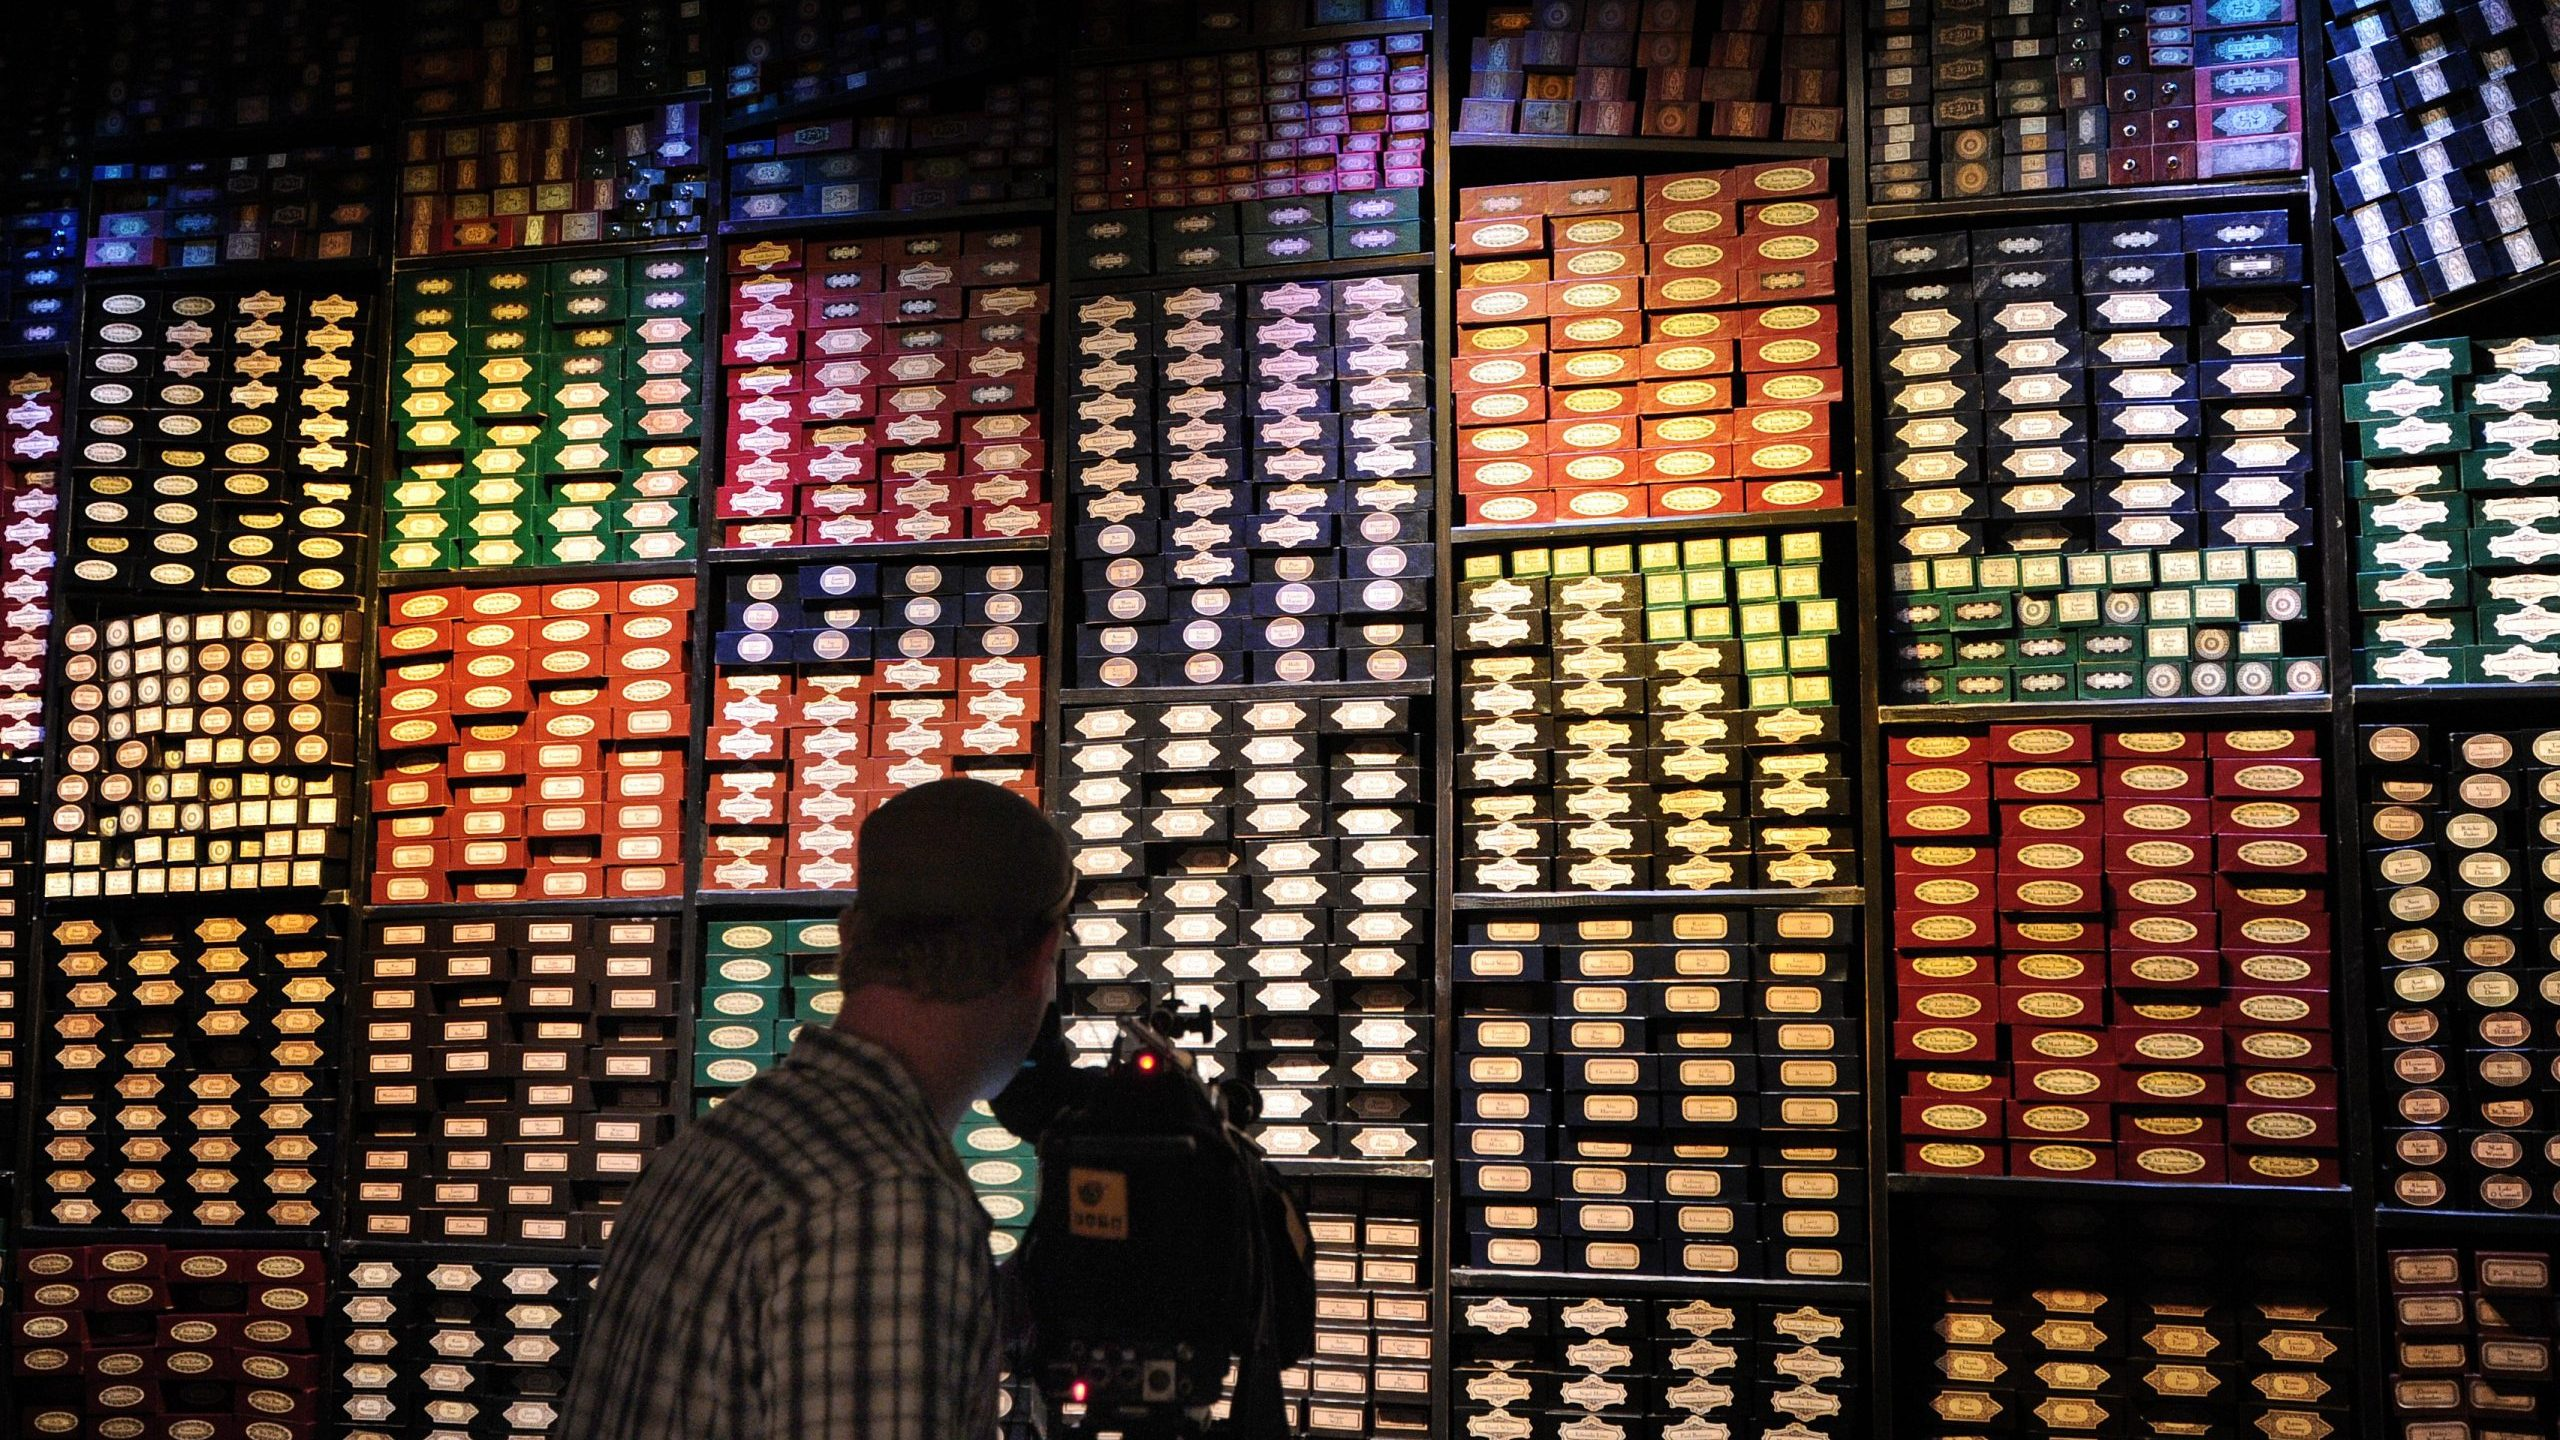 A display of wand boxes during at the Warner Bros. Harry Potter studio tour in north London on March 26, 2012. (Credit: Carl Court/AFP via Getty Images)